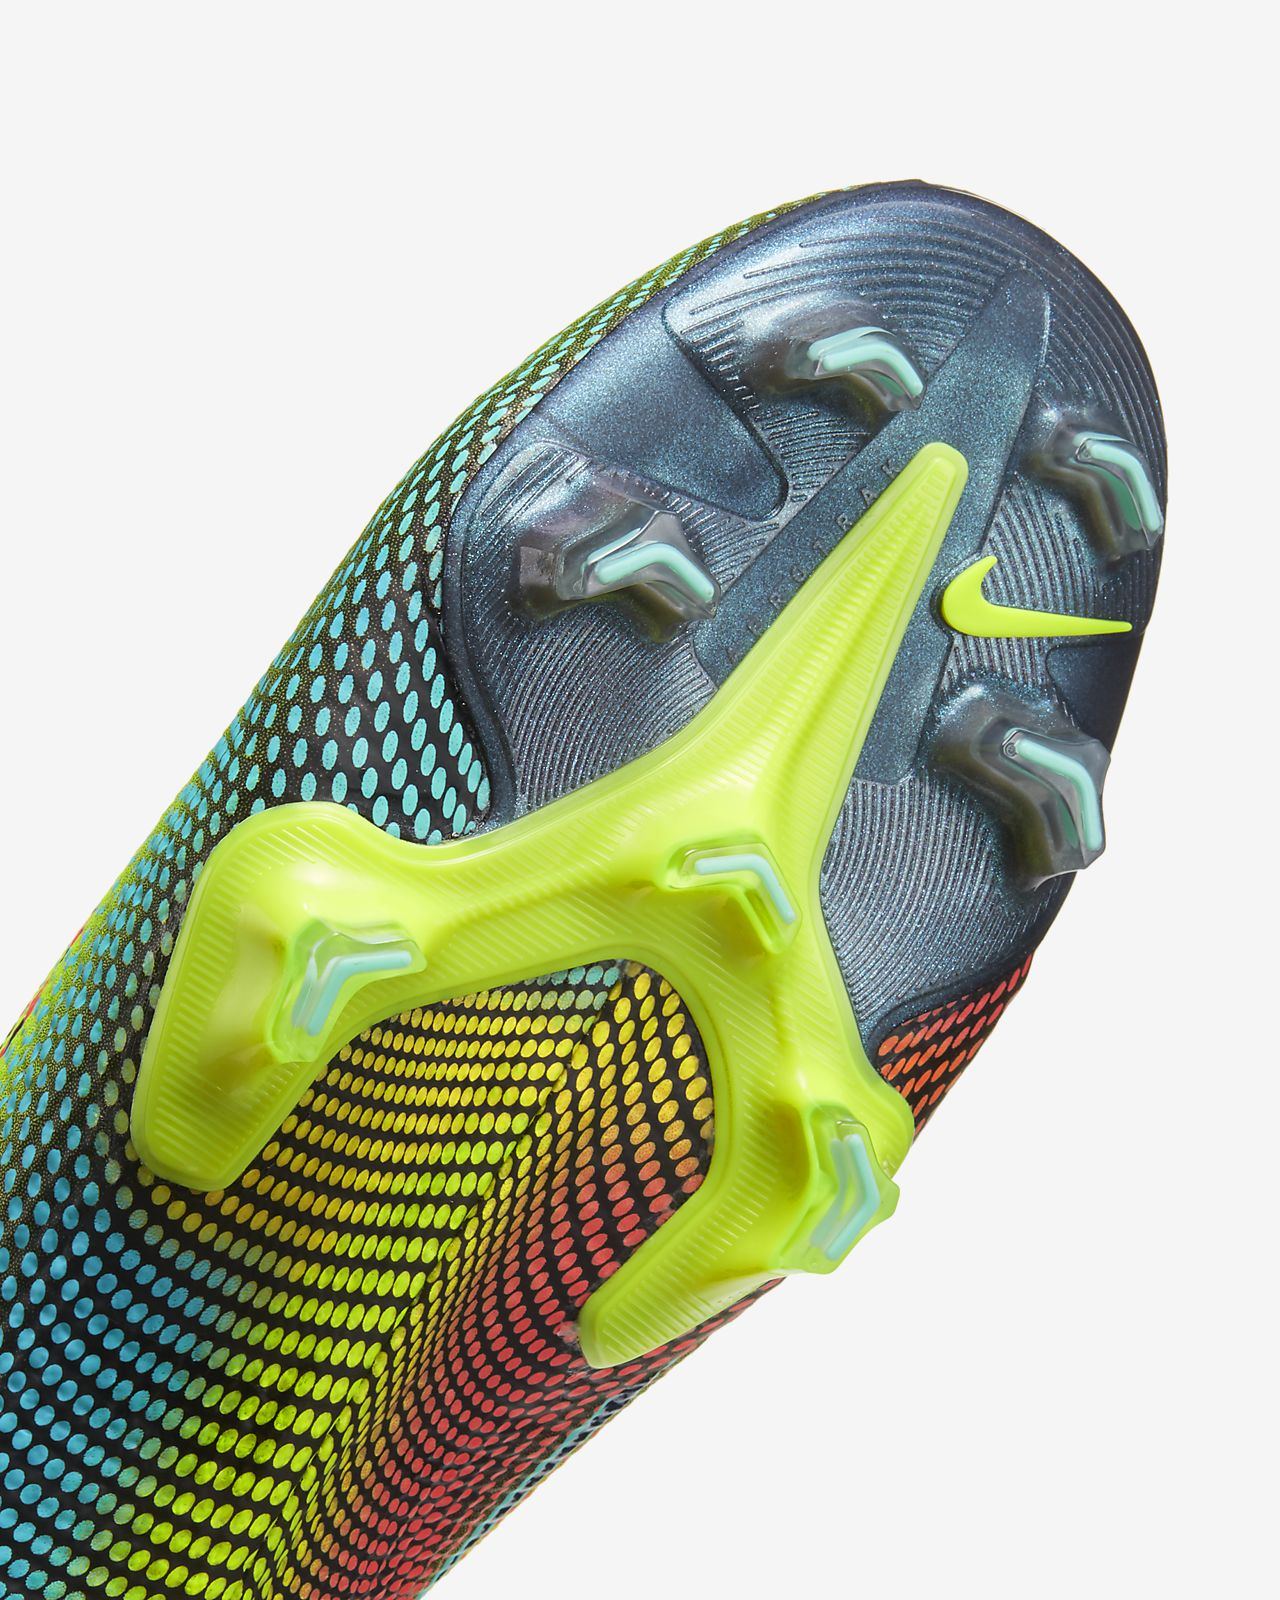 Nike New Lights Pack Featuring Superfly 7 and Vapor 13